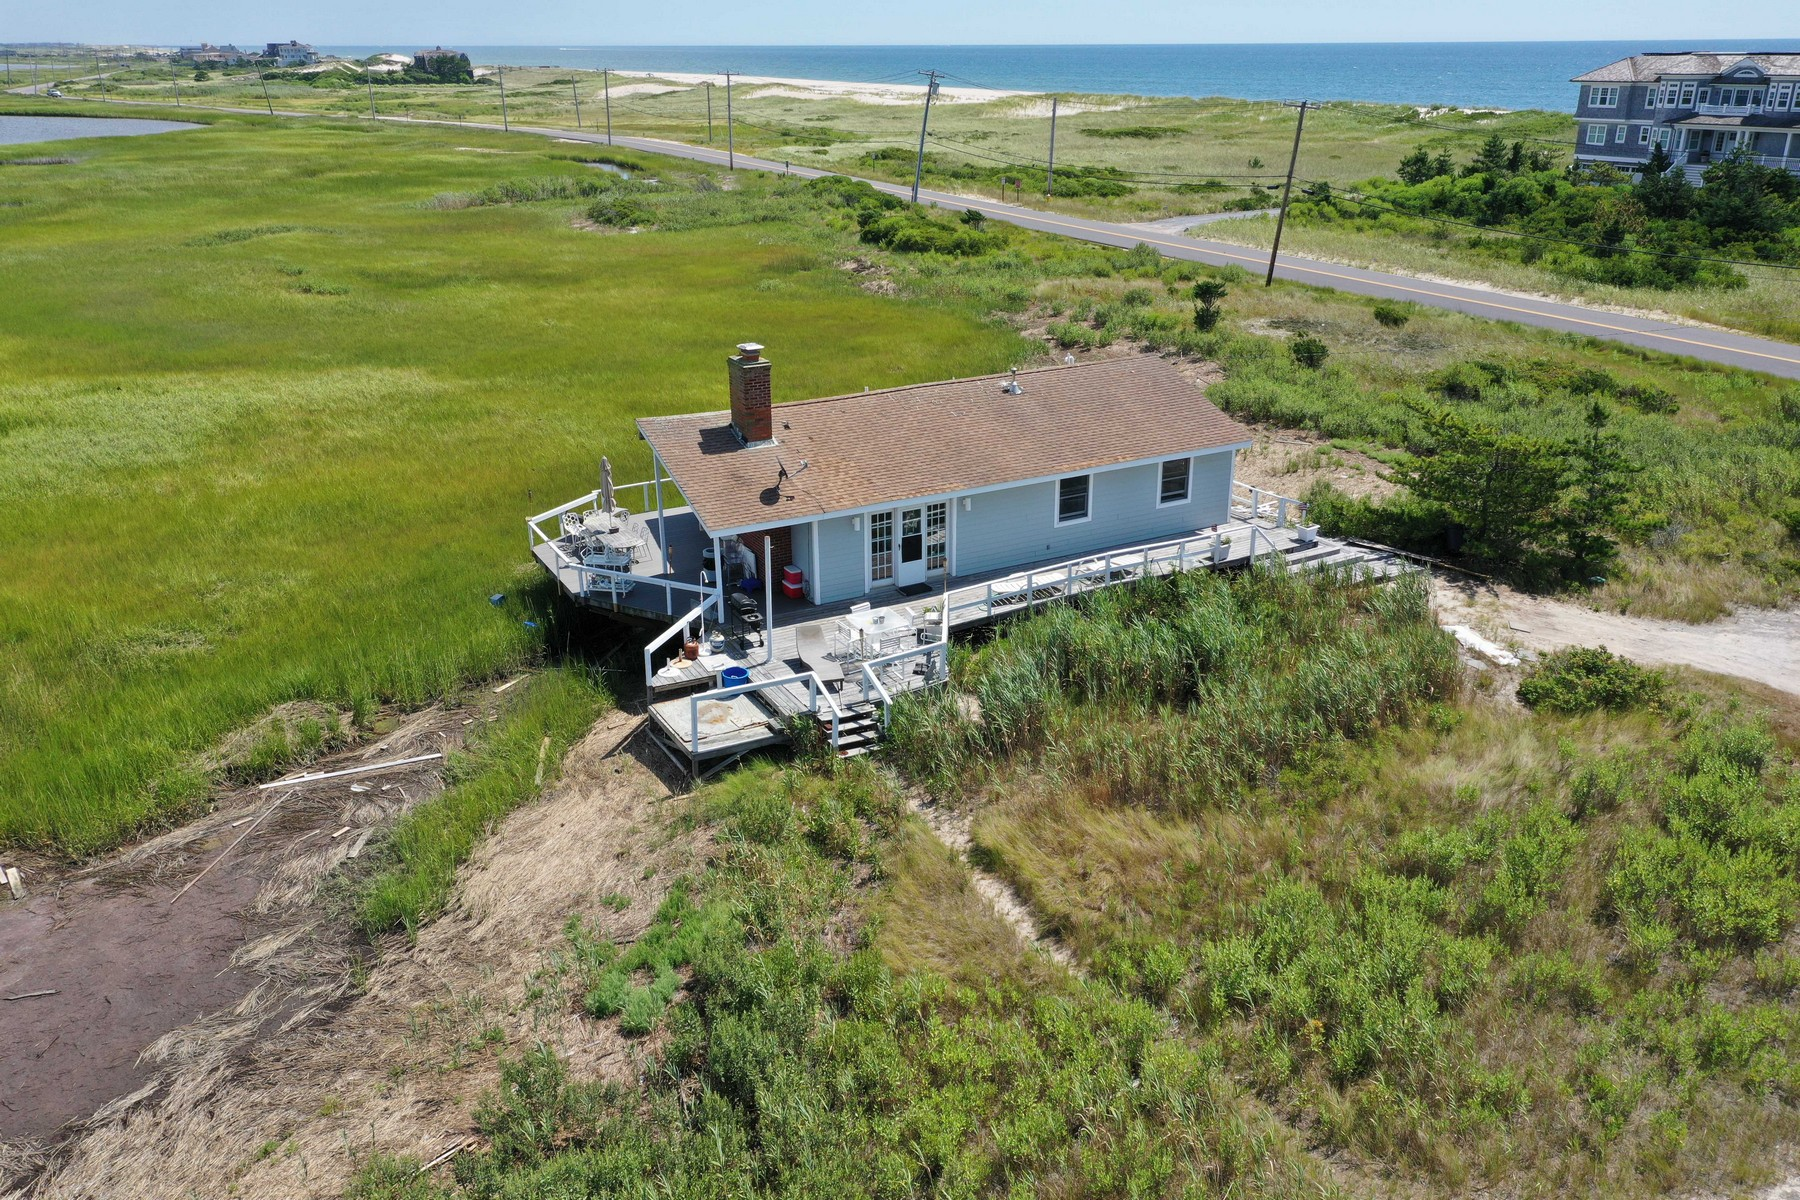 Single Family Homes for Sale at E. Quogue 24 Dune Rd East Quogue, New York 11942 United States